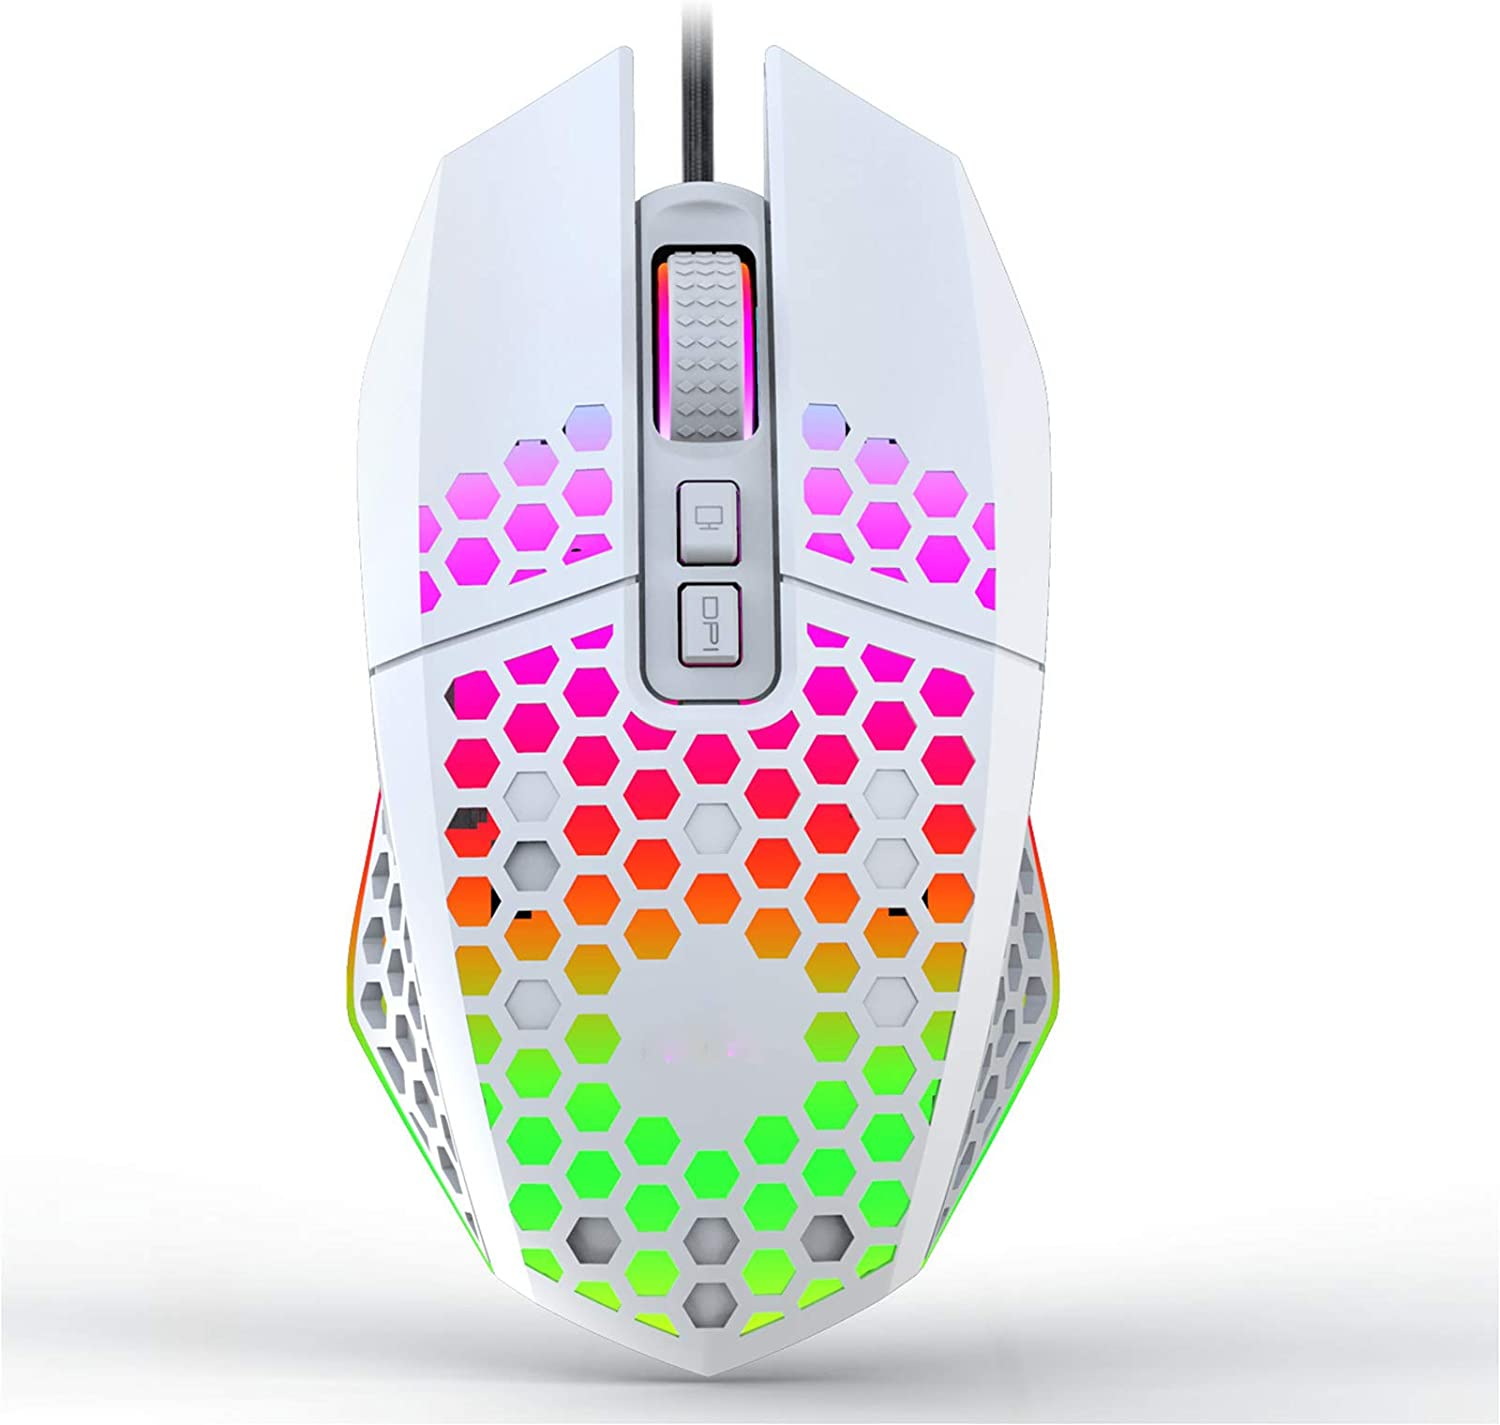 Uiosmuph X801 Wired Gaming Mouse, Honeycomb Lightweight Gaming Mouse with RGB Backlit, 7 Programmable Buttons and One-Click Desktop, 8000 DPI Optical USB Gamer Mouse for Mac, Laptop, Computer – White